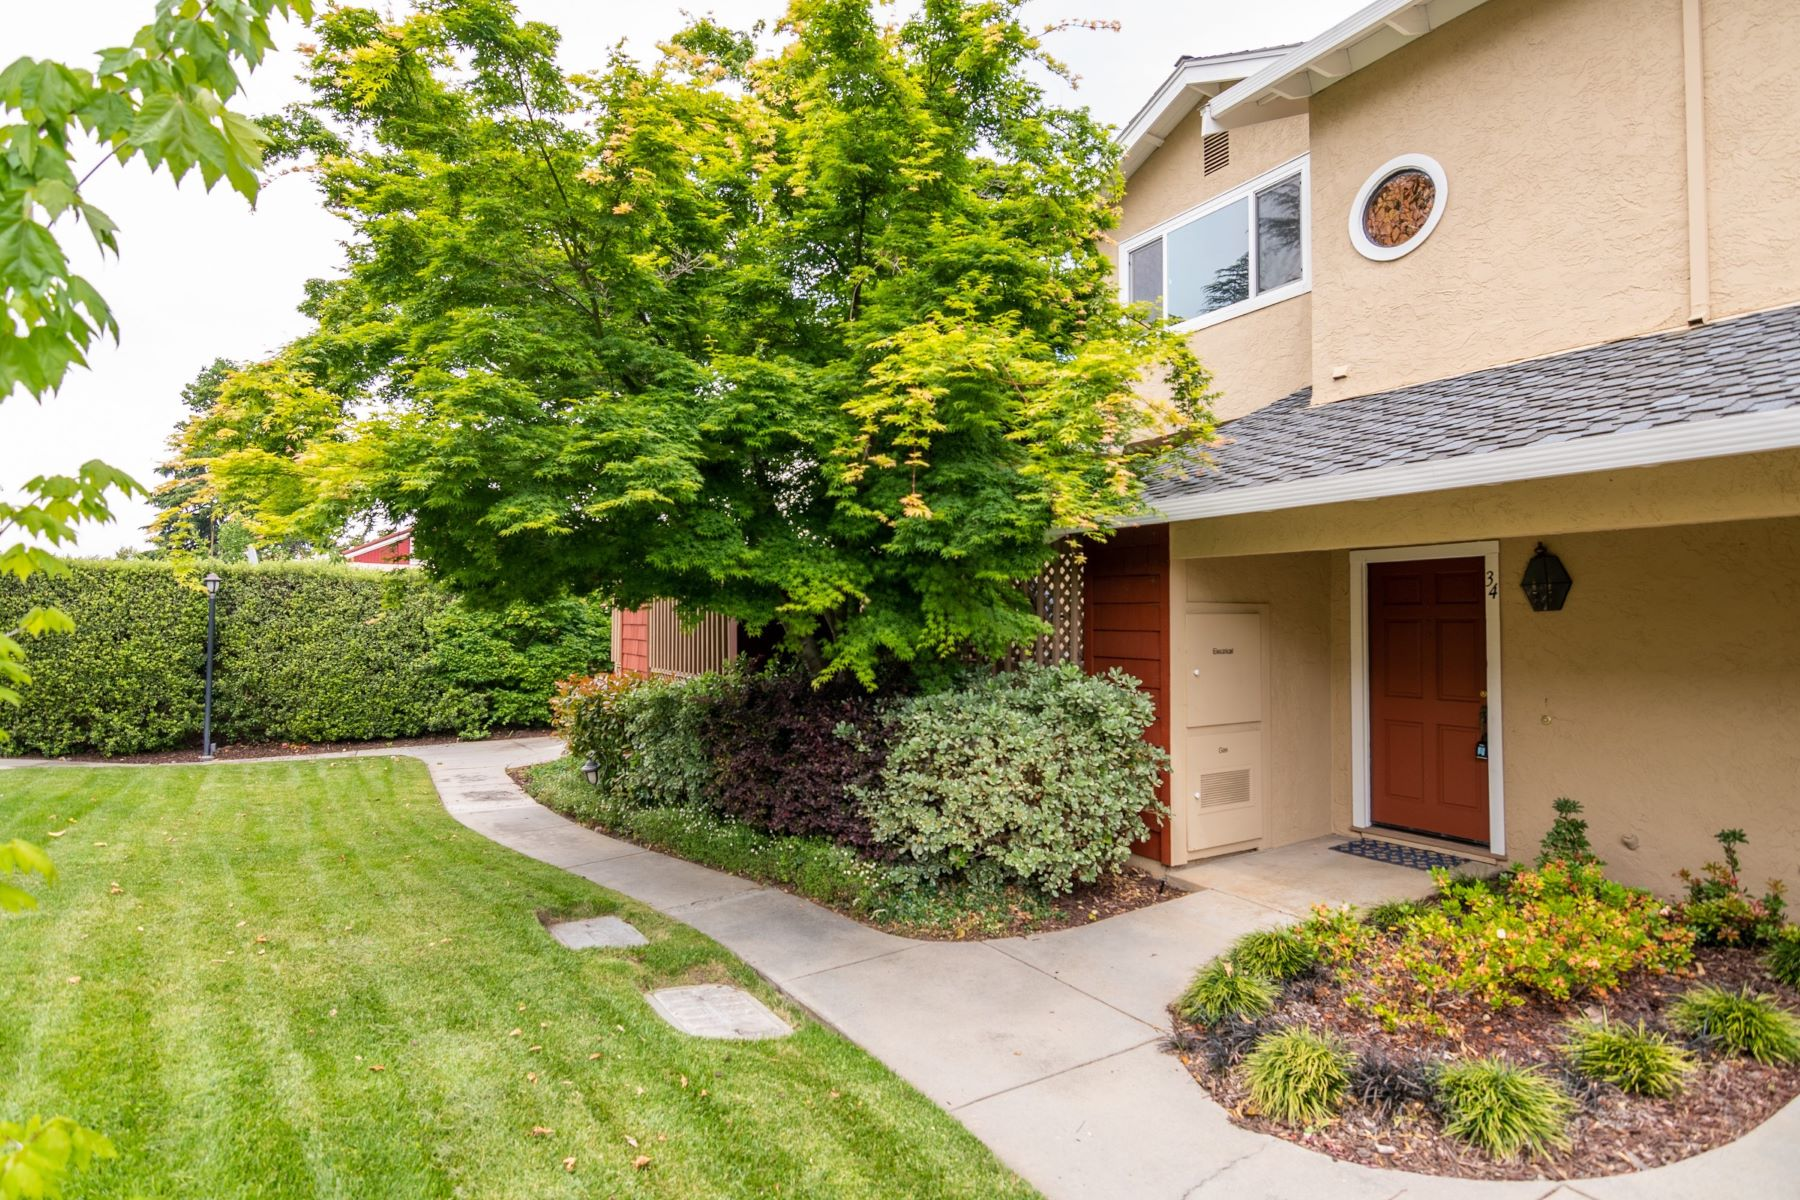 townhouses for Active at Wonderful Campbell Townhome! 34 Sanderling Court Campbell, California 95008 United States